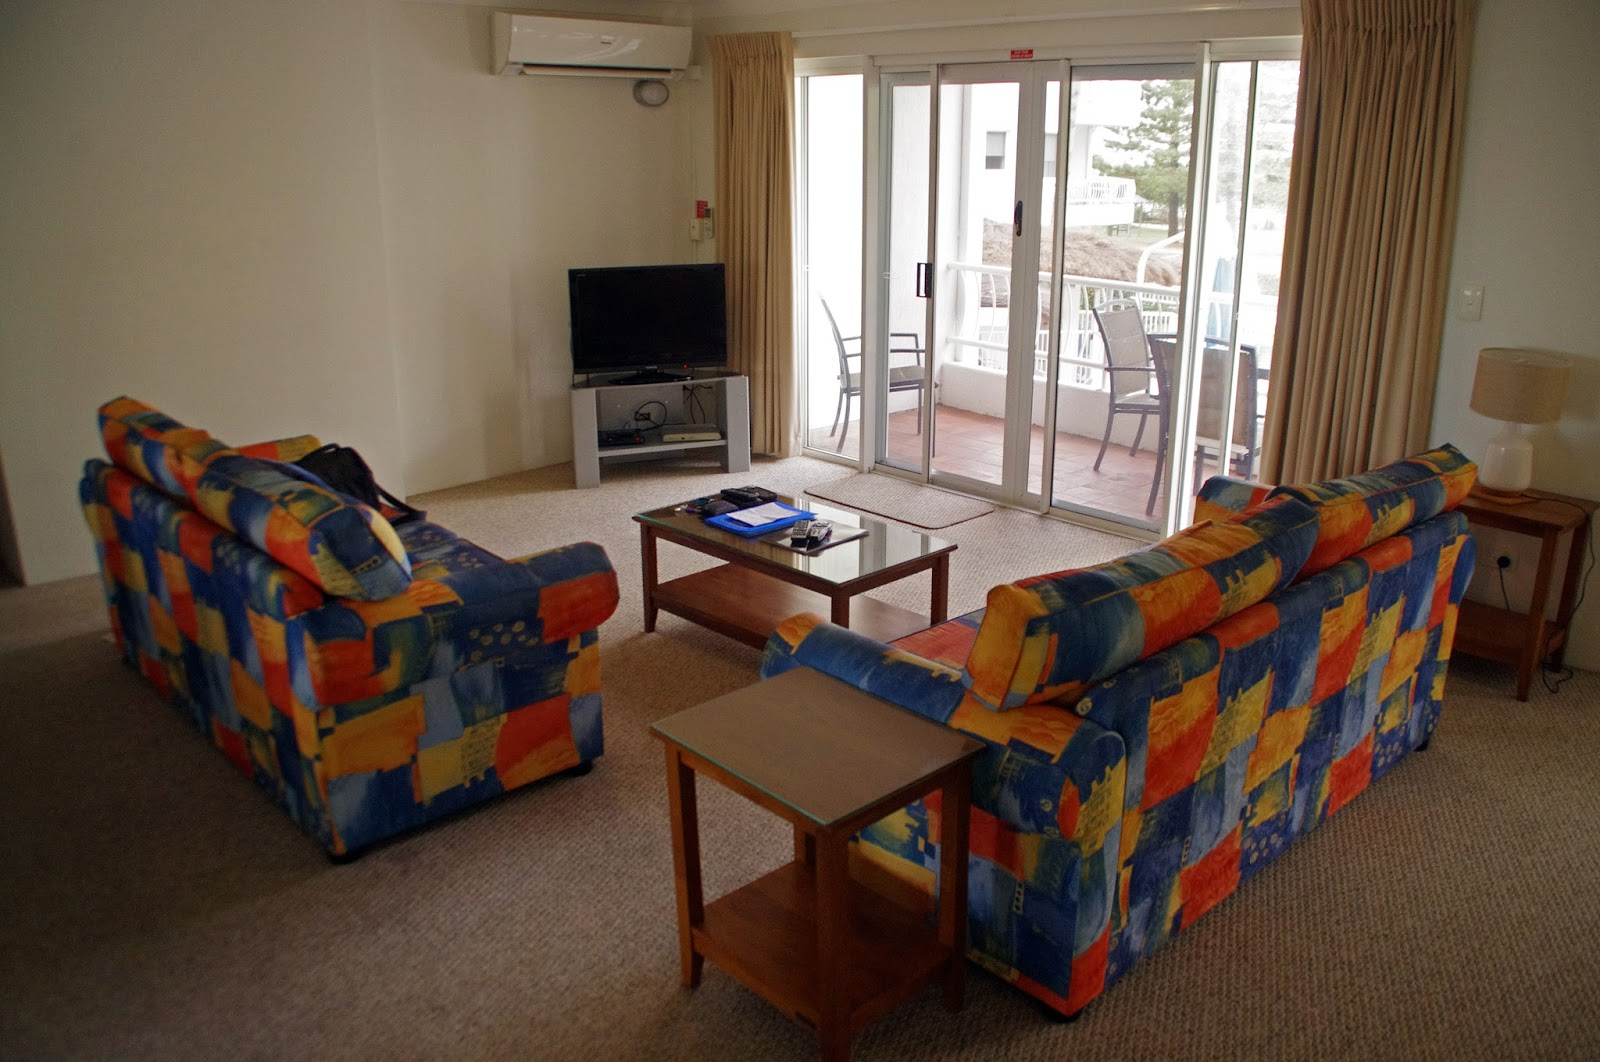 Le beach Apartments Burleigh Heads Lounge Room